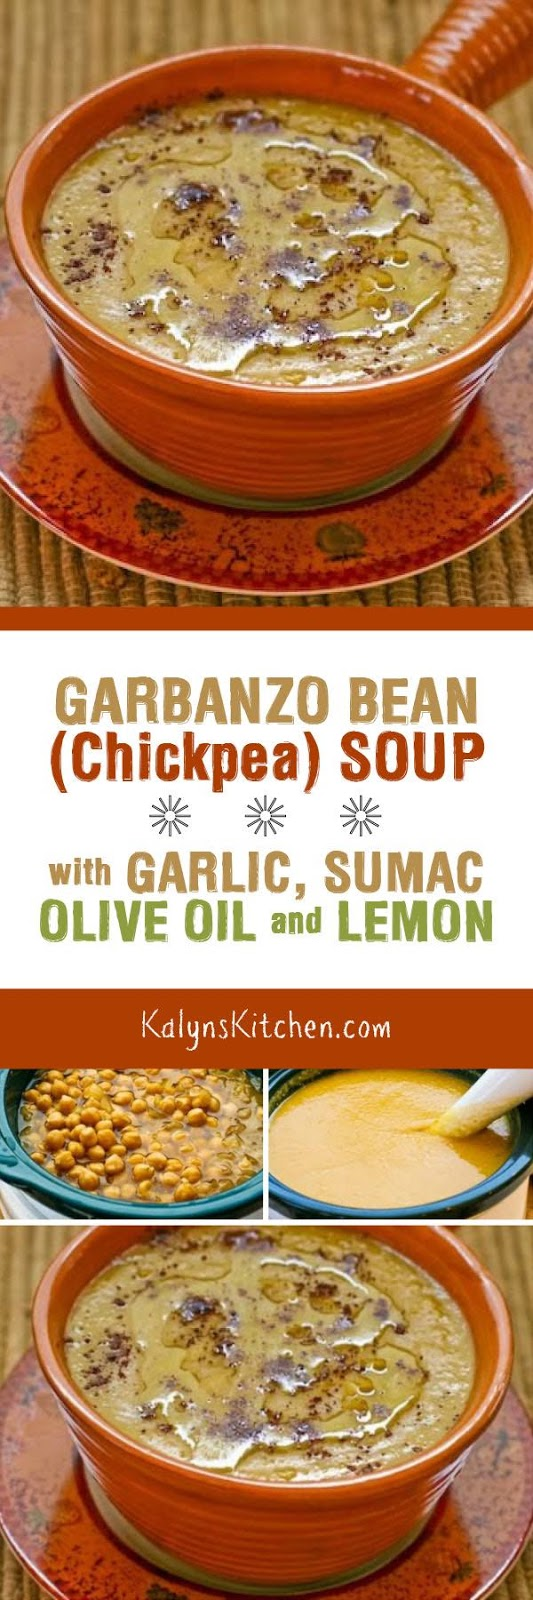 Garbanzo Bean / Chickpea Soup with Garlic, Sumac, Olive ...